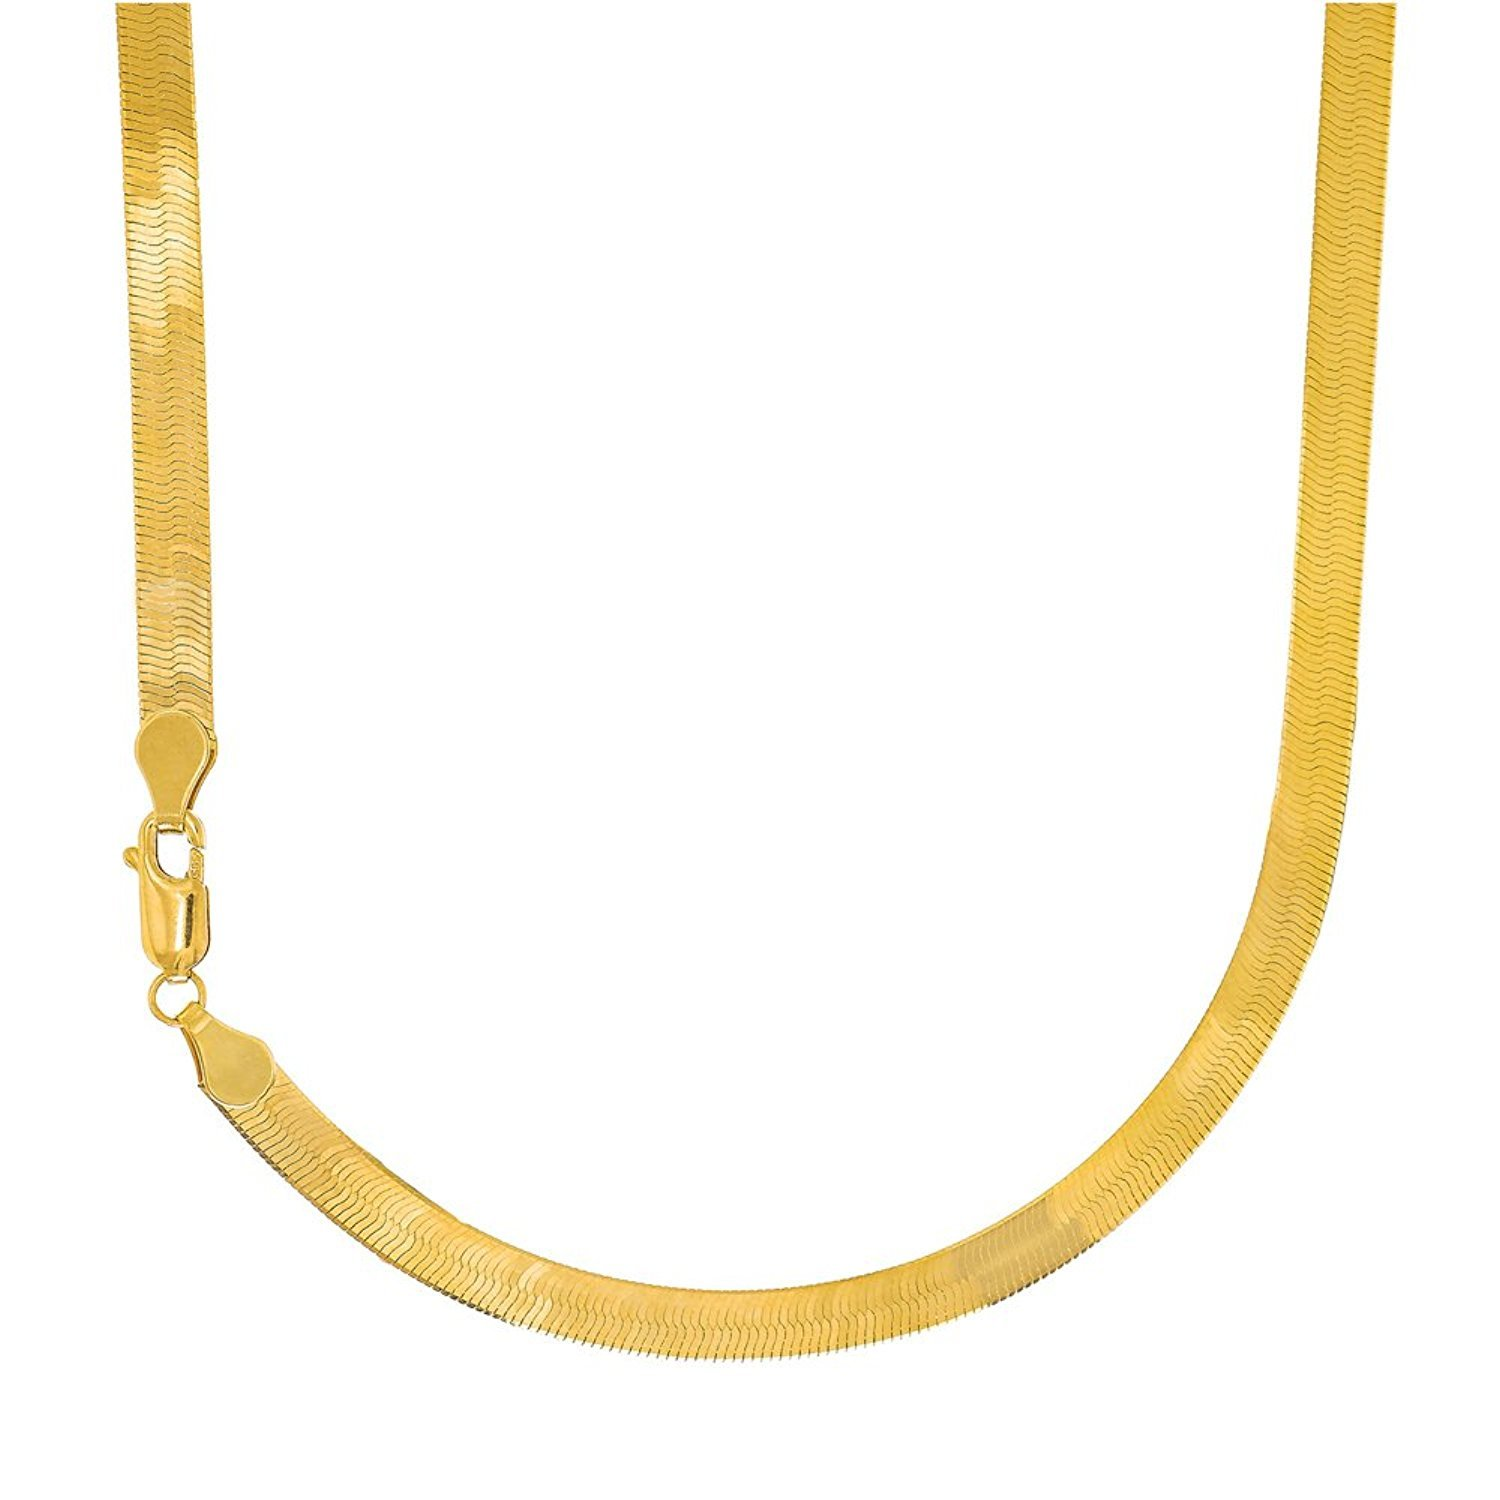 MCS Jewelry 14 Karat Solid Yellow Gold Flexible Silky Imperial Herringbone Necklace 3.0 mm (16'', 18'' & 20'') (16)